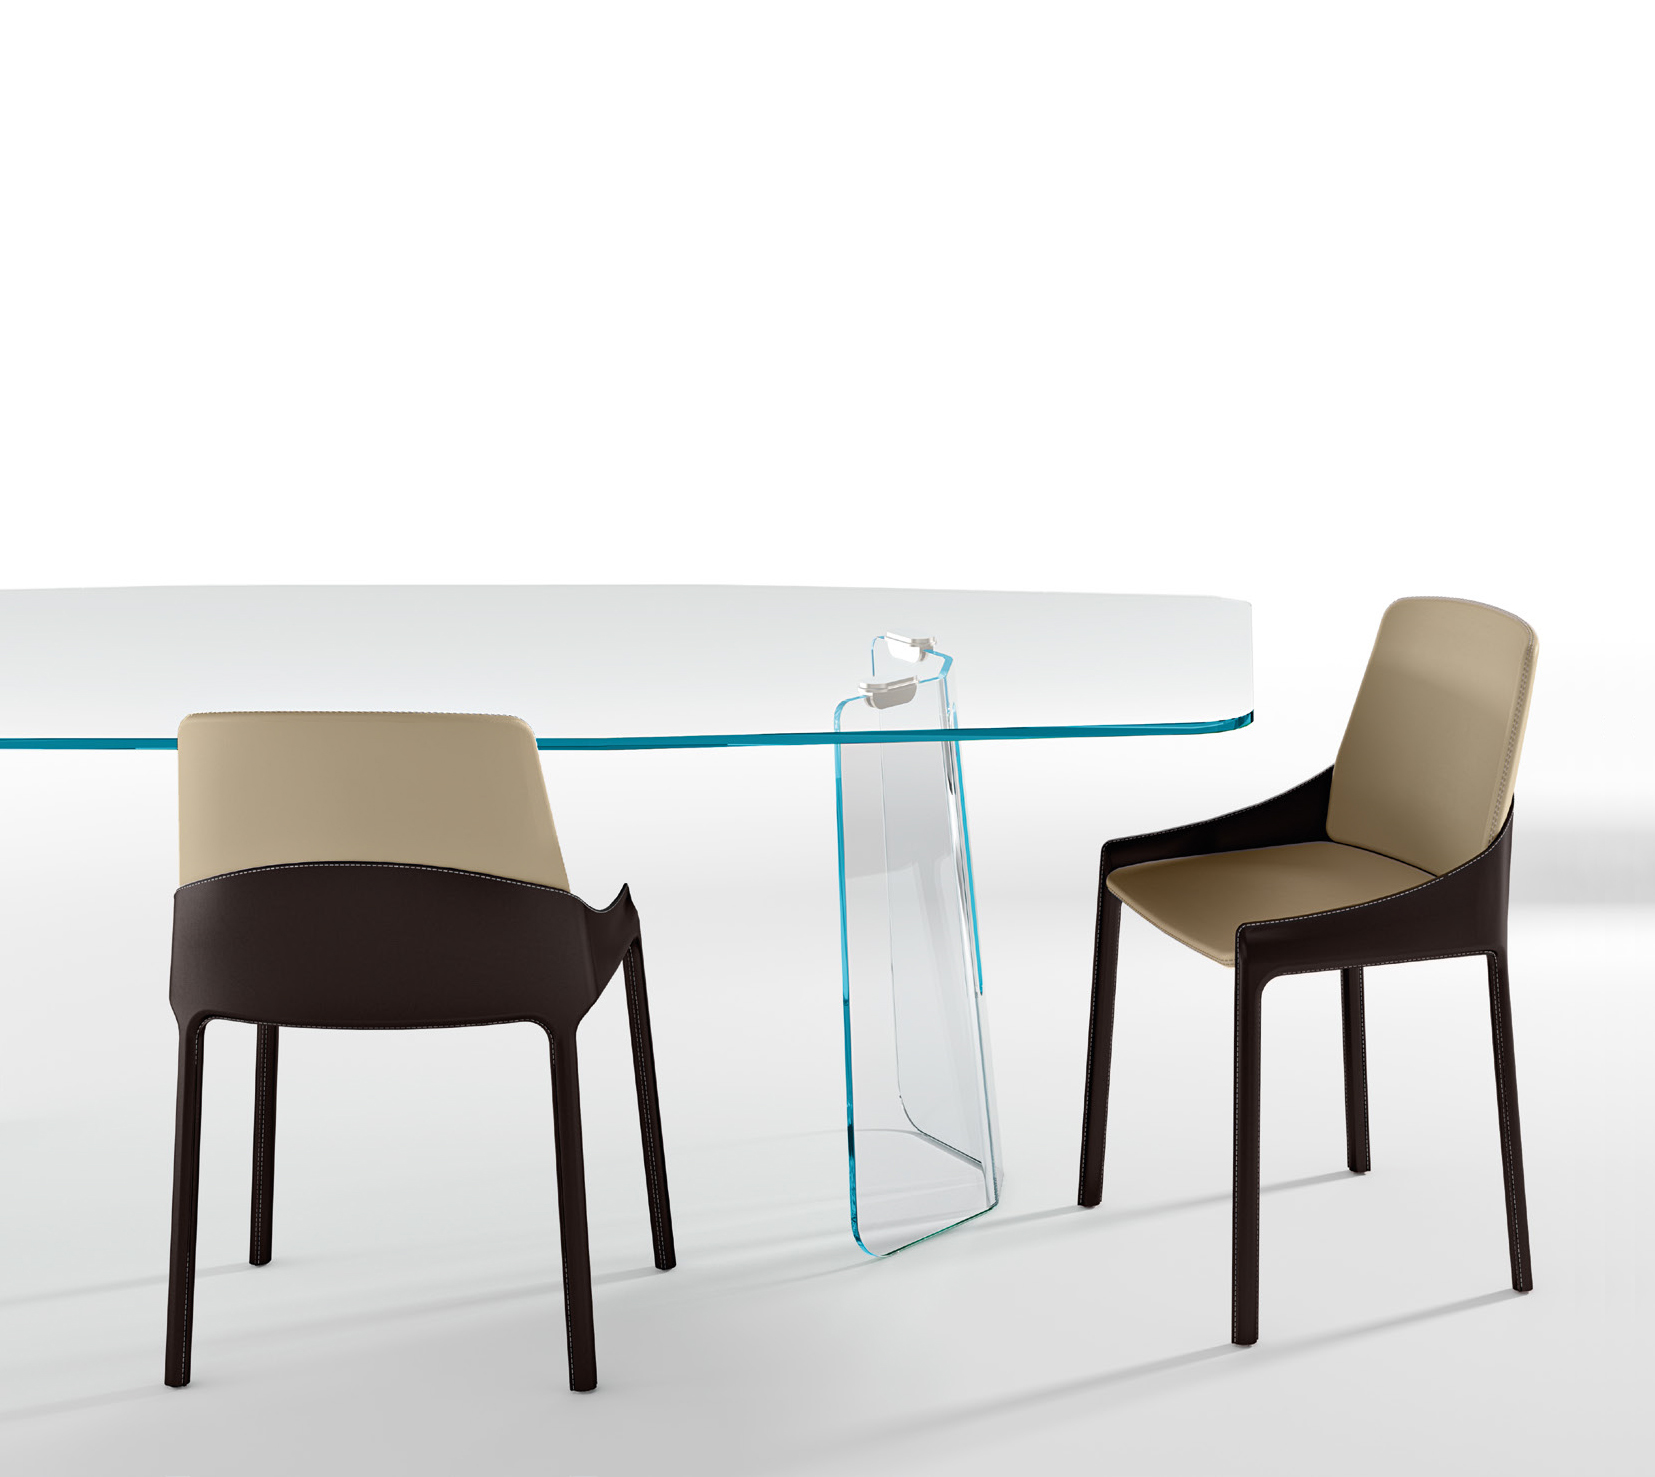 High End Dining Room Furniture Brands: Italian Designer & Luxury Furniture By Cassoni